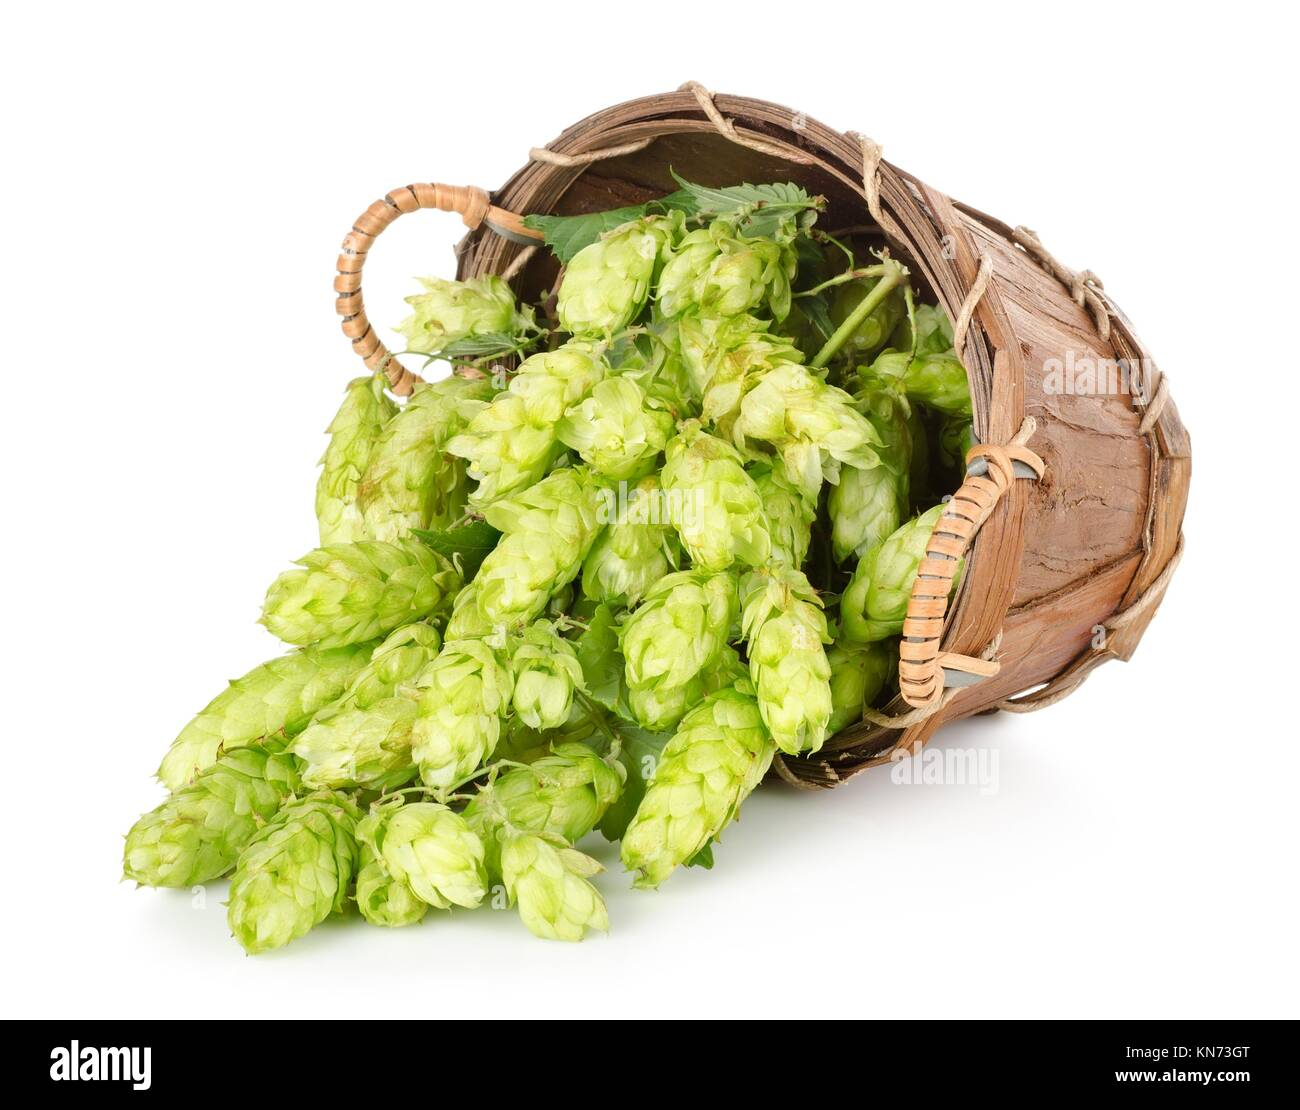 Hops in a wooden basket isolated on white background. - Stock Image